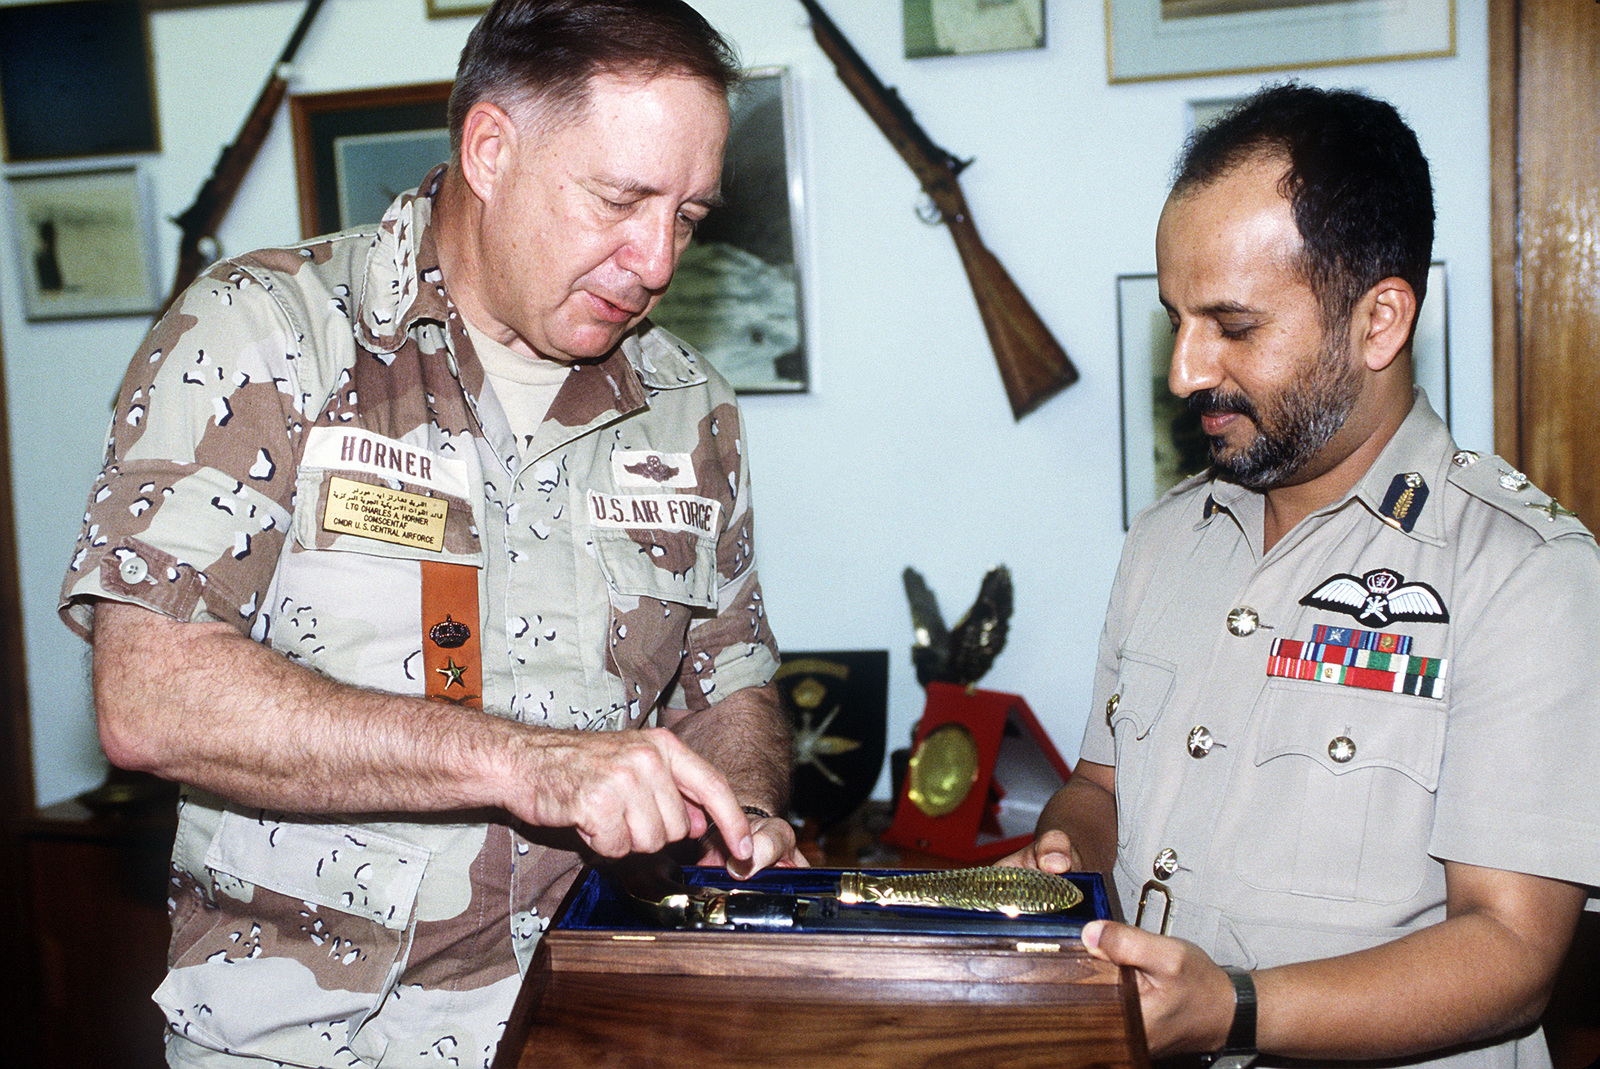 LT. GEN. Charles A. Horner, commanding general, U.S. Central Air Force, presents Air Vice Marshal Talib Bin Miran Bin Zamam Al-Raeesi with a pistol in recognition of his performance during Operation Desert Storm.